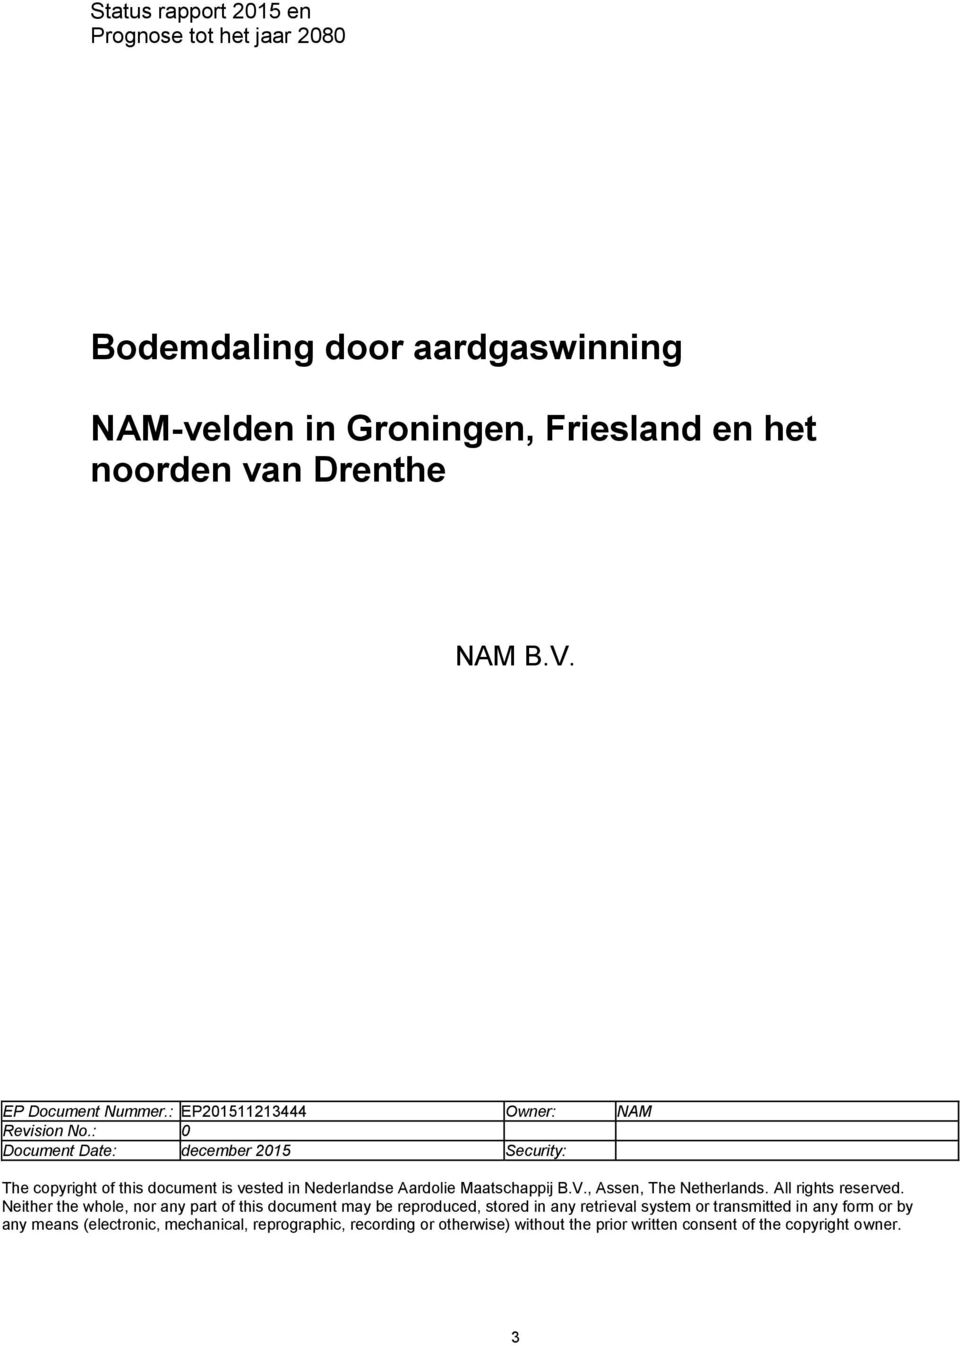 : 0 Document Date: december 2015 Security: The copyright of this document is vested in Nederlandse Aardolie Maatschappij B.V., Assen, The Netherlands.